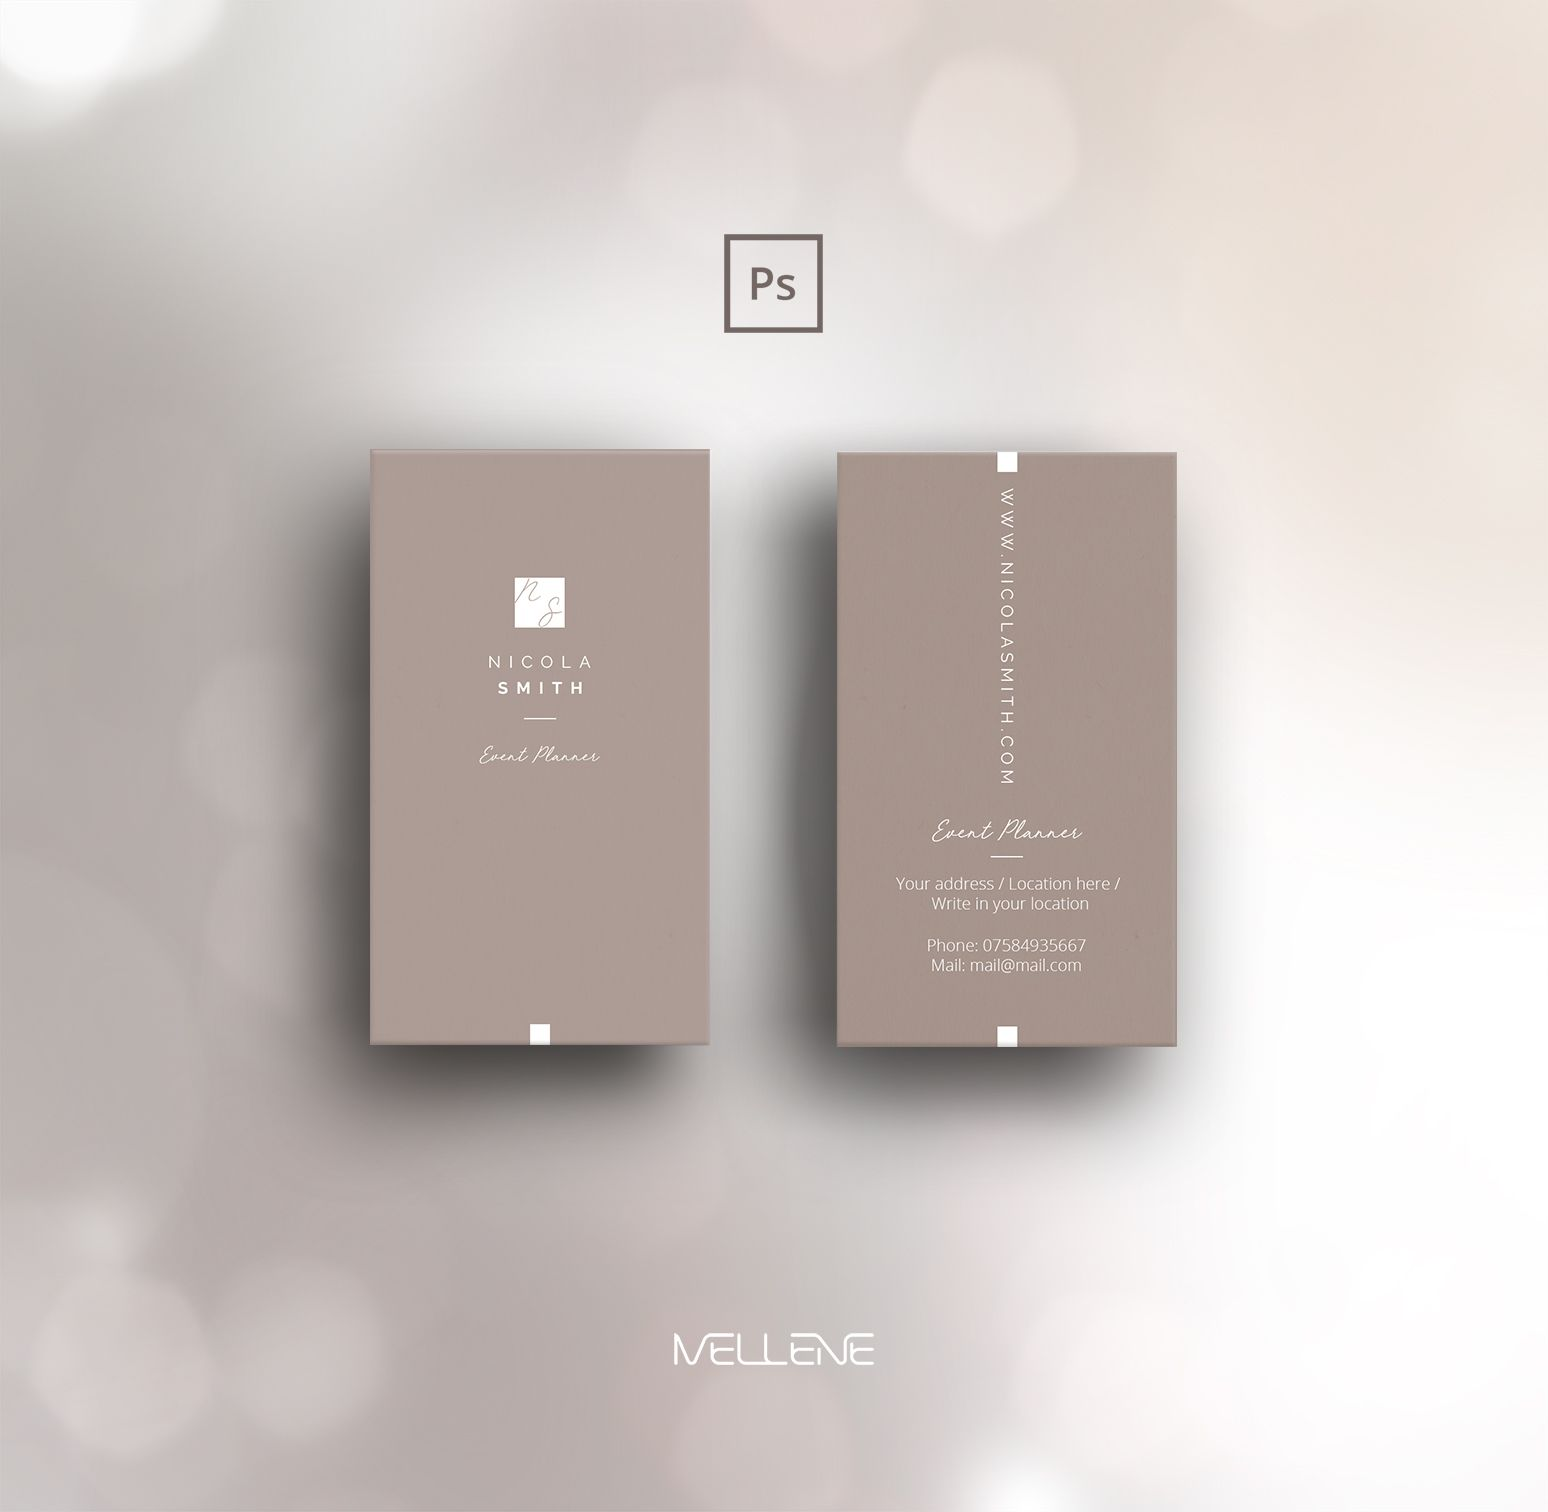 Business Card Template For Adobe Photoshop Psd File Etsy Business Card Design Simple Business Card Design Minimal Business Cards Creative